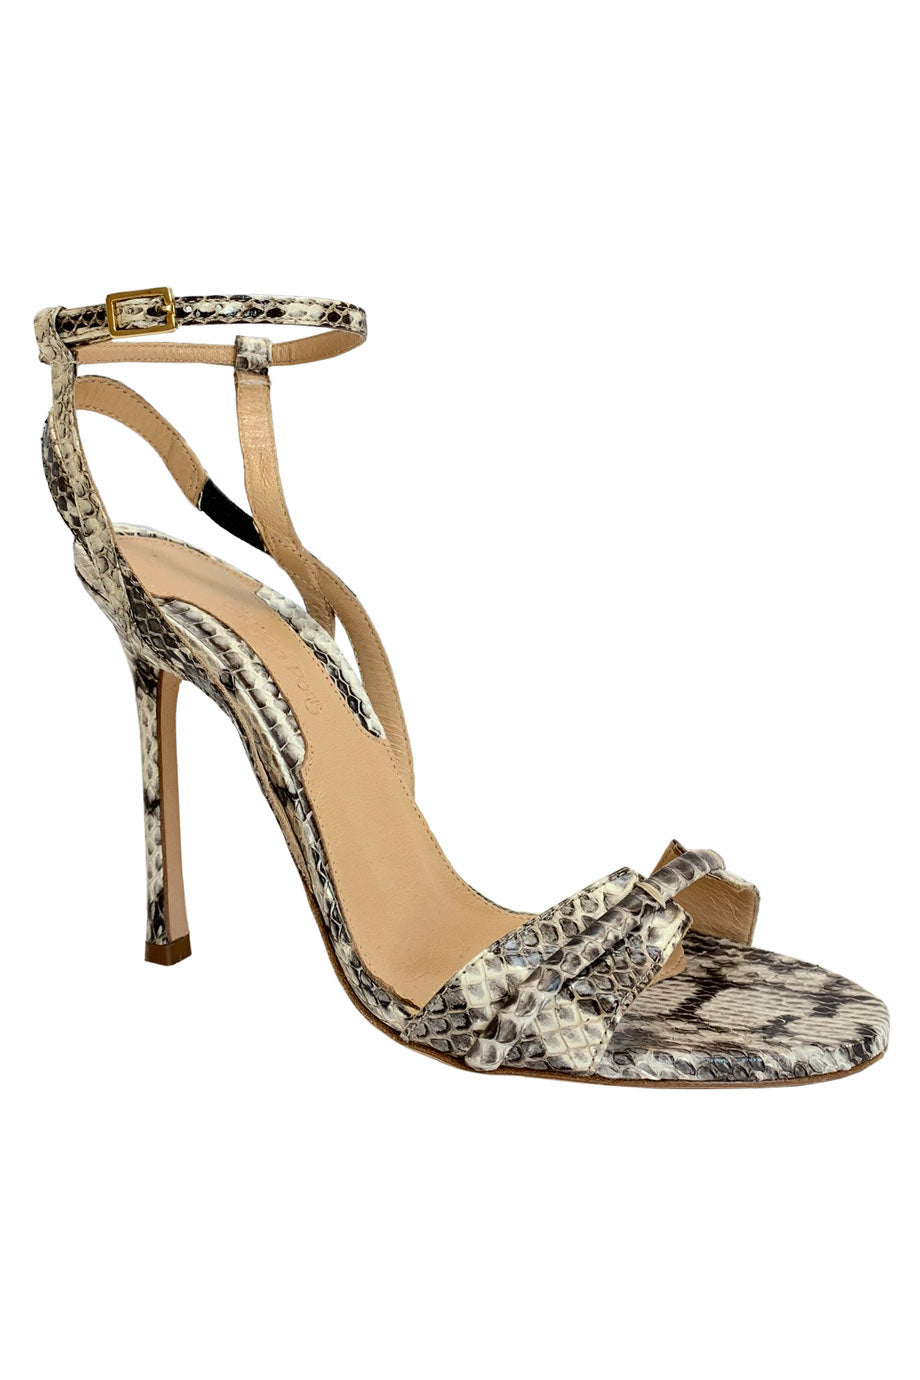 Chelsea Paris Neutral Snakeskin Strappy Stiletto Sandals / Sz 37-Style Therapy